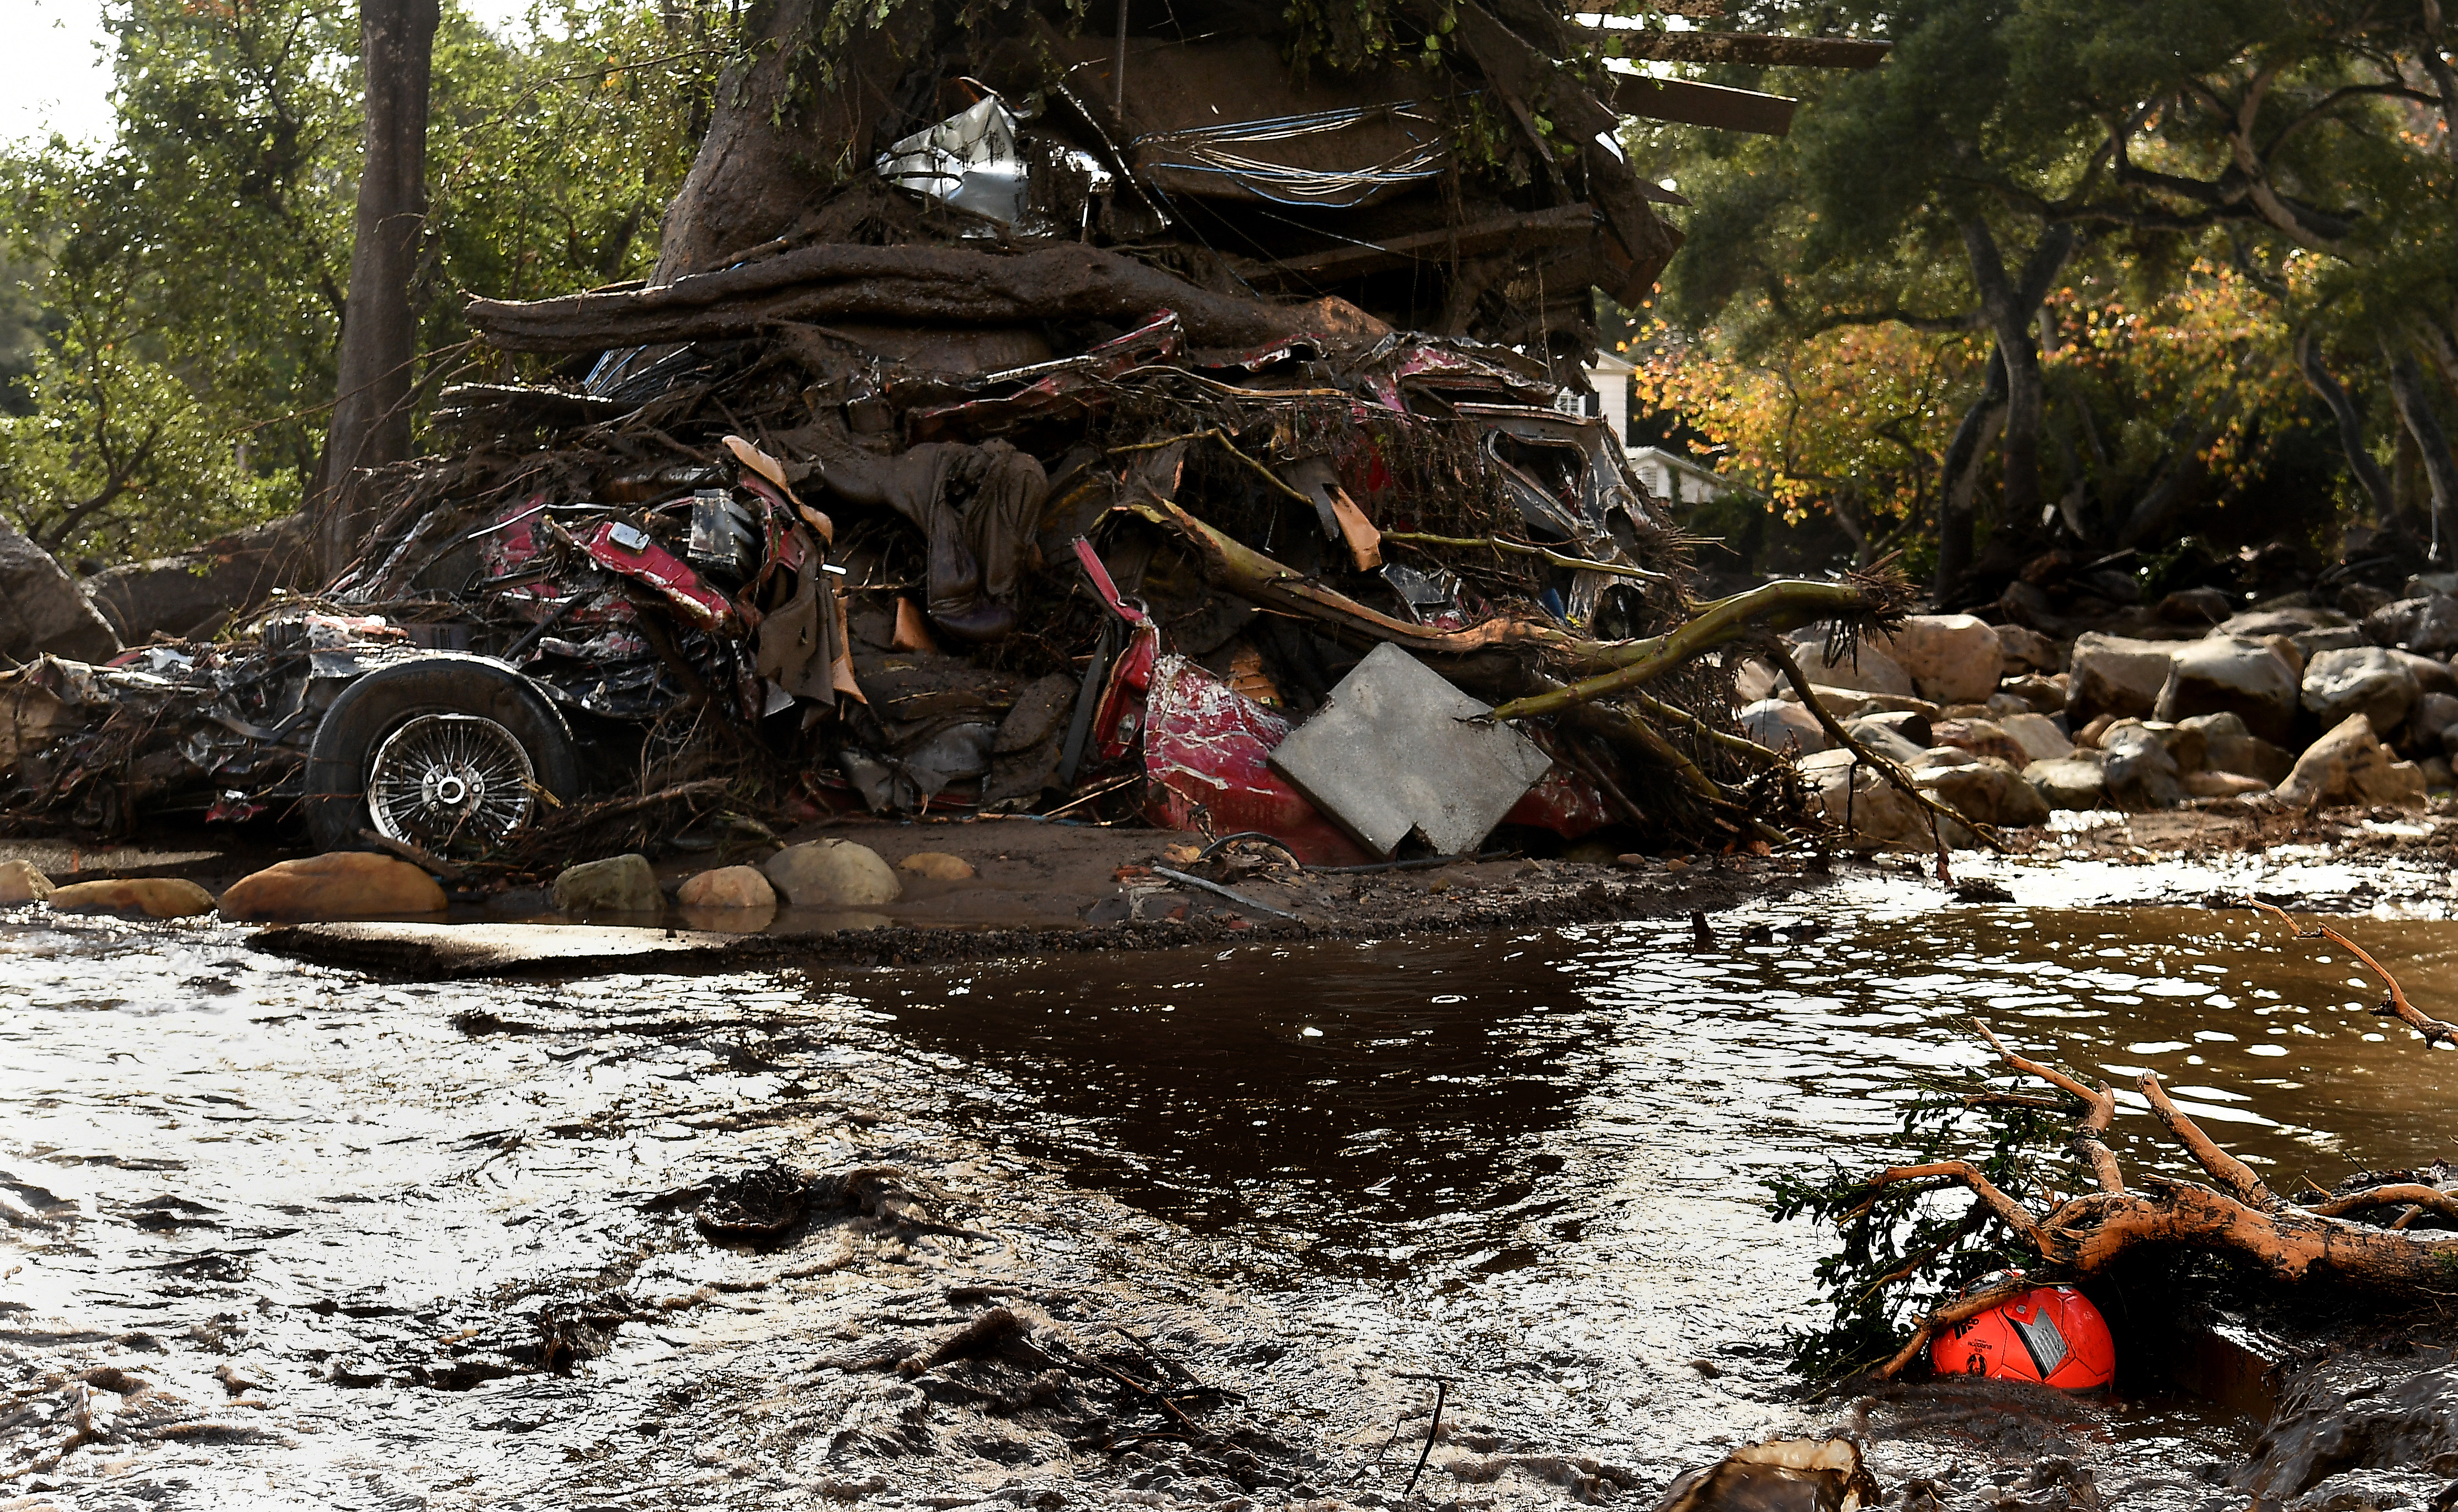 MONTECITO, CA - JANUARY 9: A mangled car along with other debris stack up aguainst a tree along Hot Springs Road in Montecito after a major storm hit the burn area Tuesday January 9, 2018 in Montecito, California.